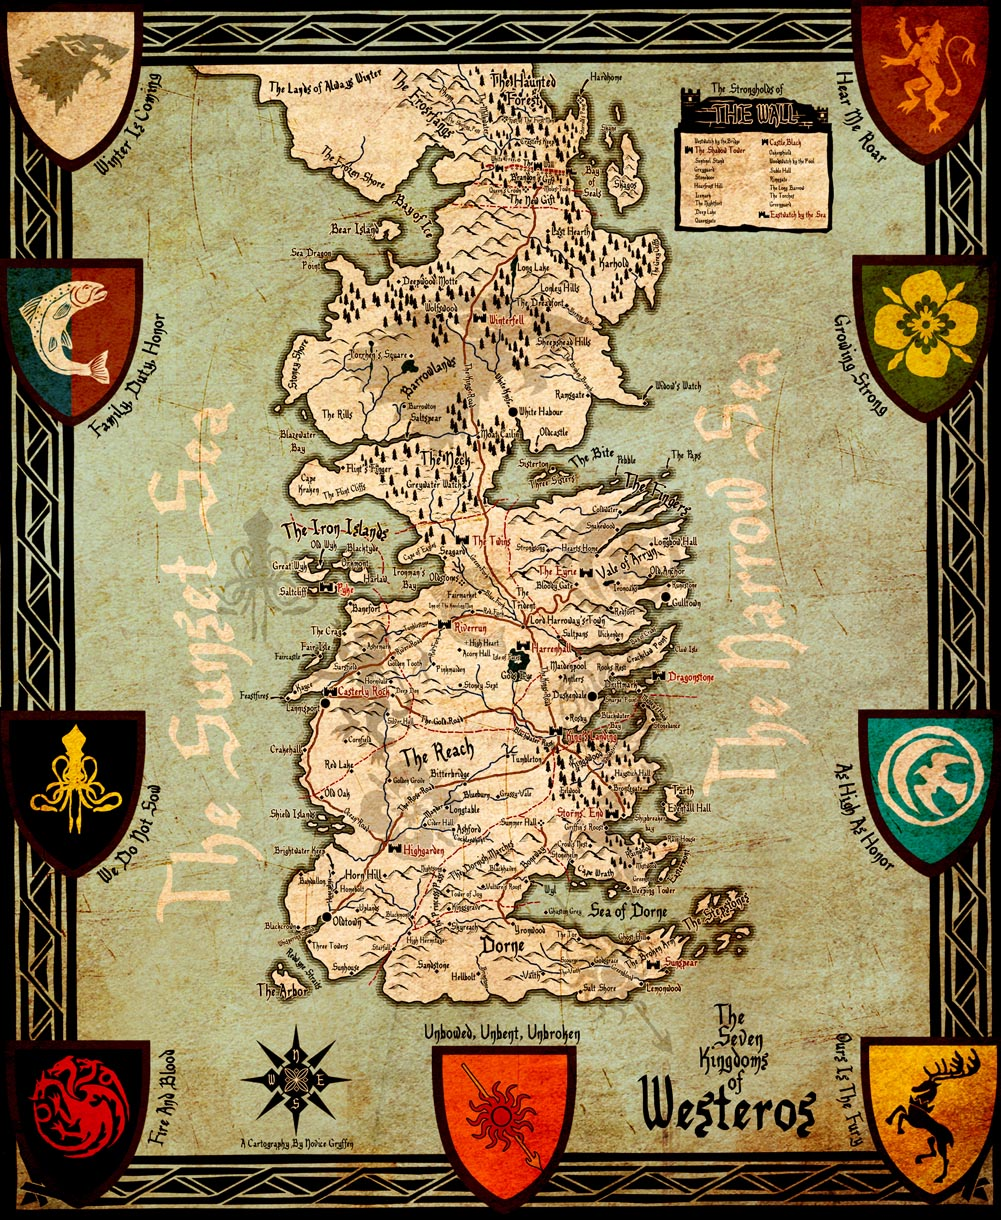 Game of thrones houses map westeros and free cities poster for Decoration murale game of thrones